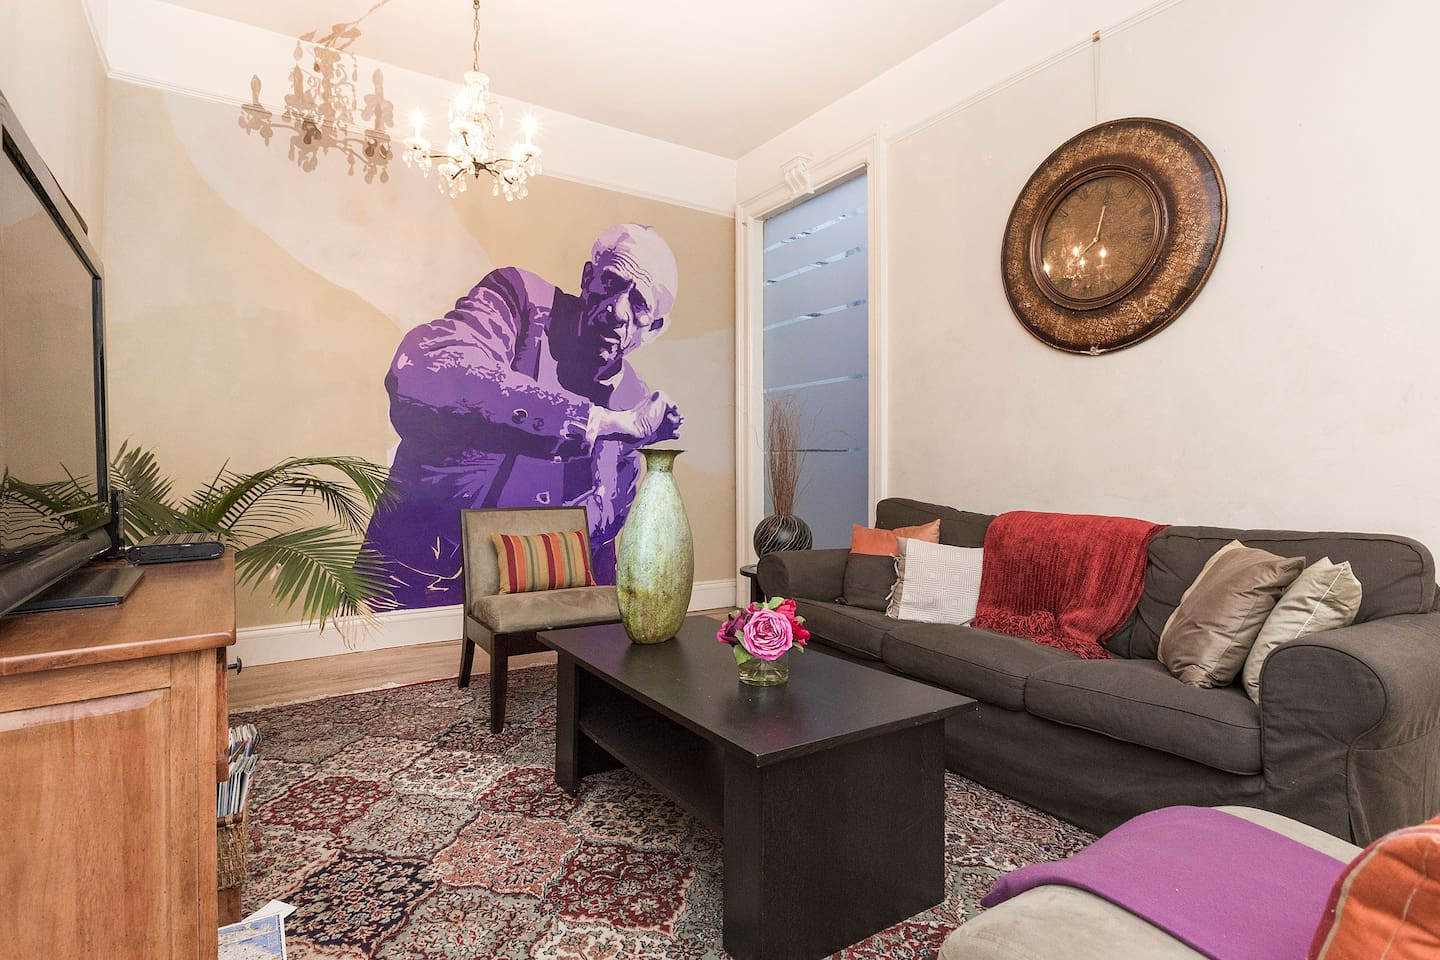 Relax in the living with a wall mural of JD Salinger